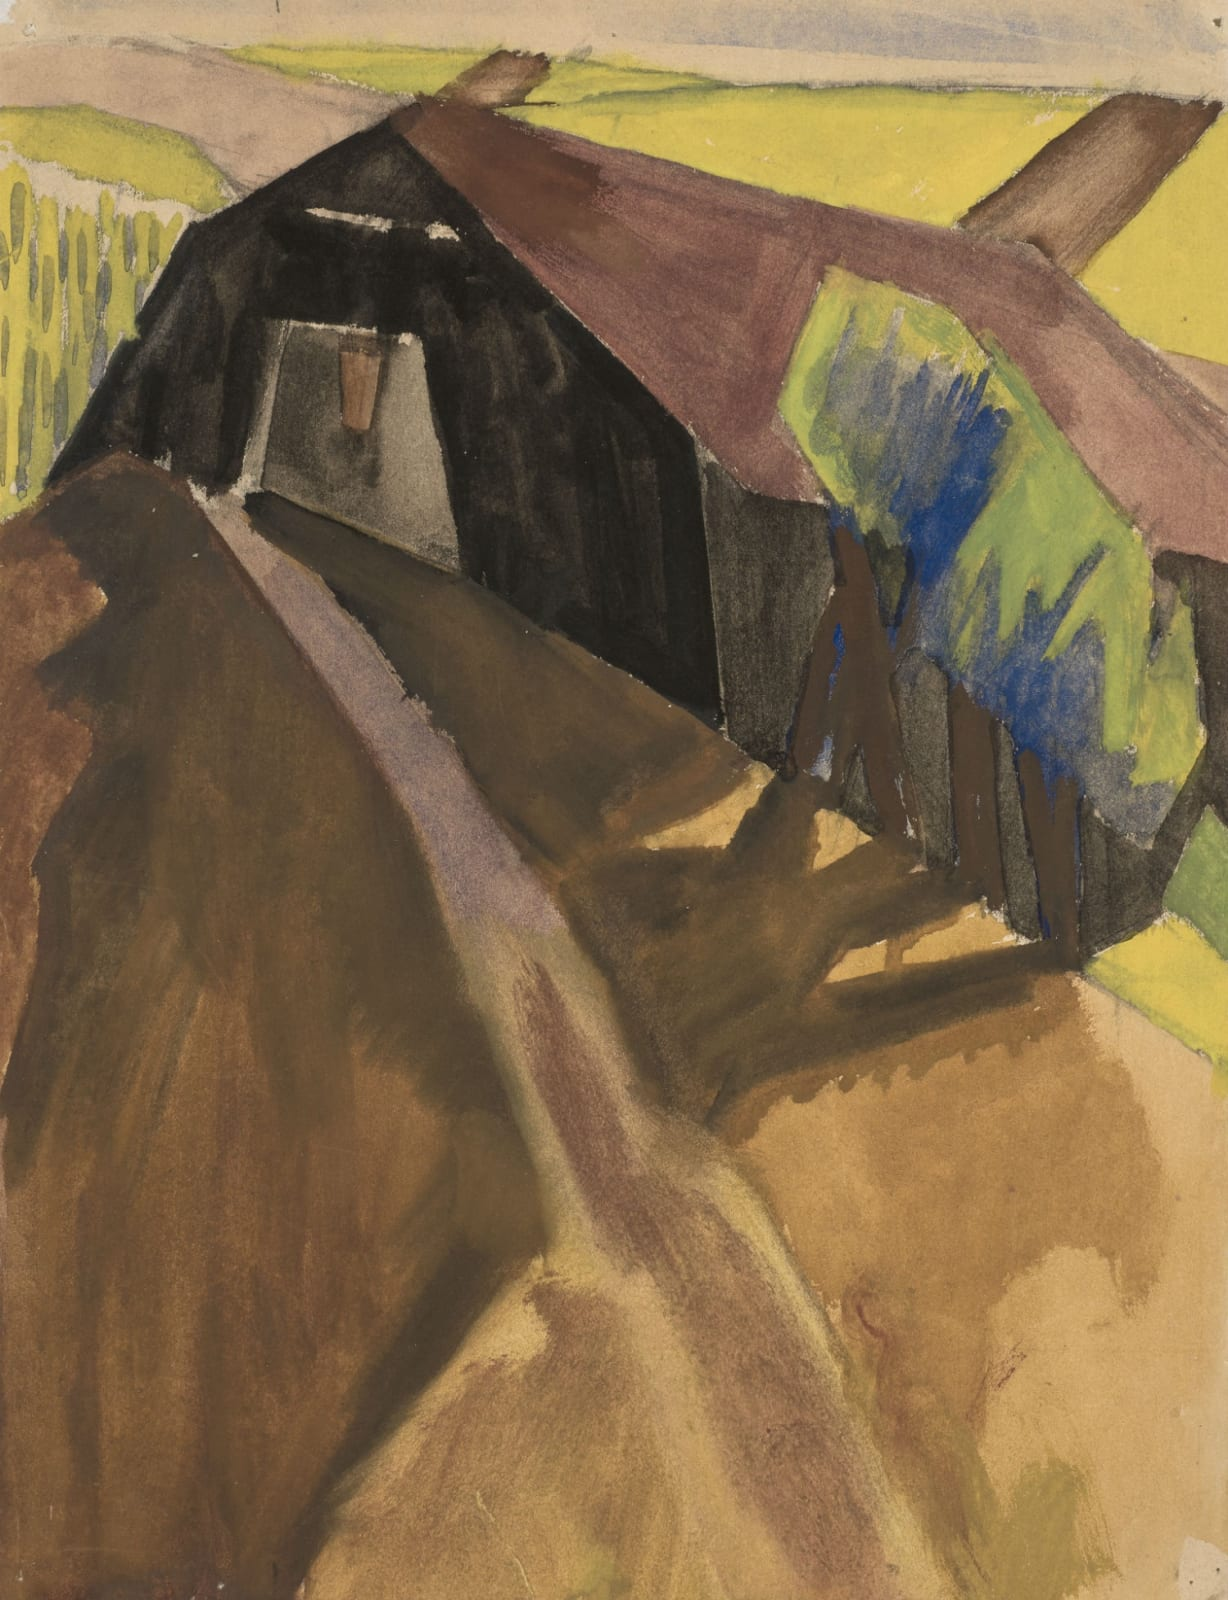 David Bomberg (1890-1951) Canal Bank, France 1920 Gouache on paper 34.5 x 26.5 cm Ben Uri Collection On loan from Nadine van Dyk (the artist's grandaughter)